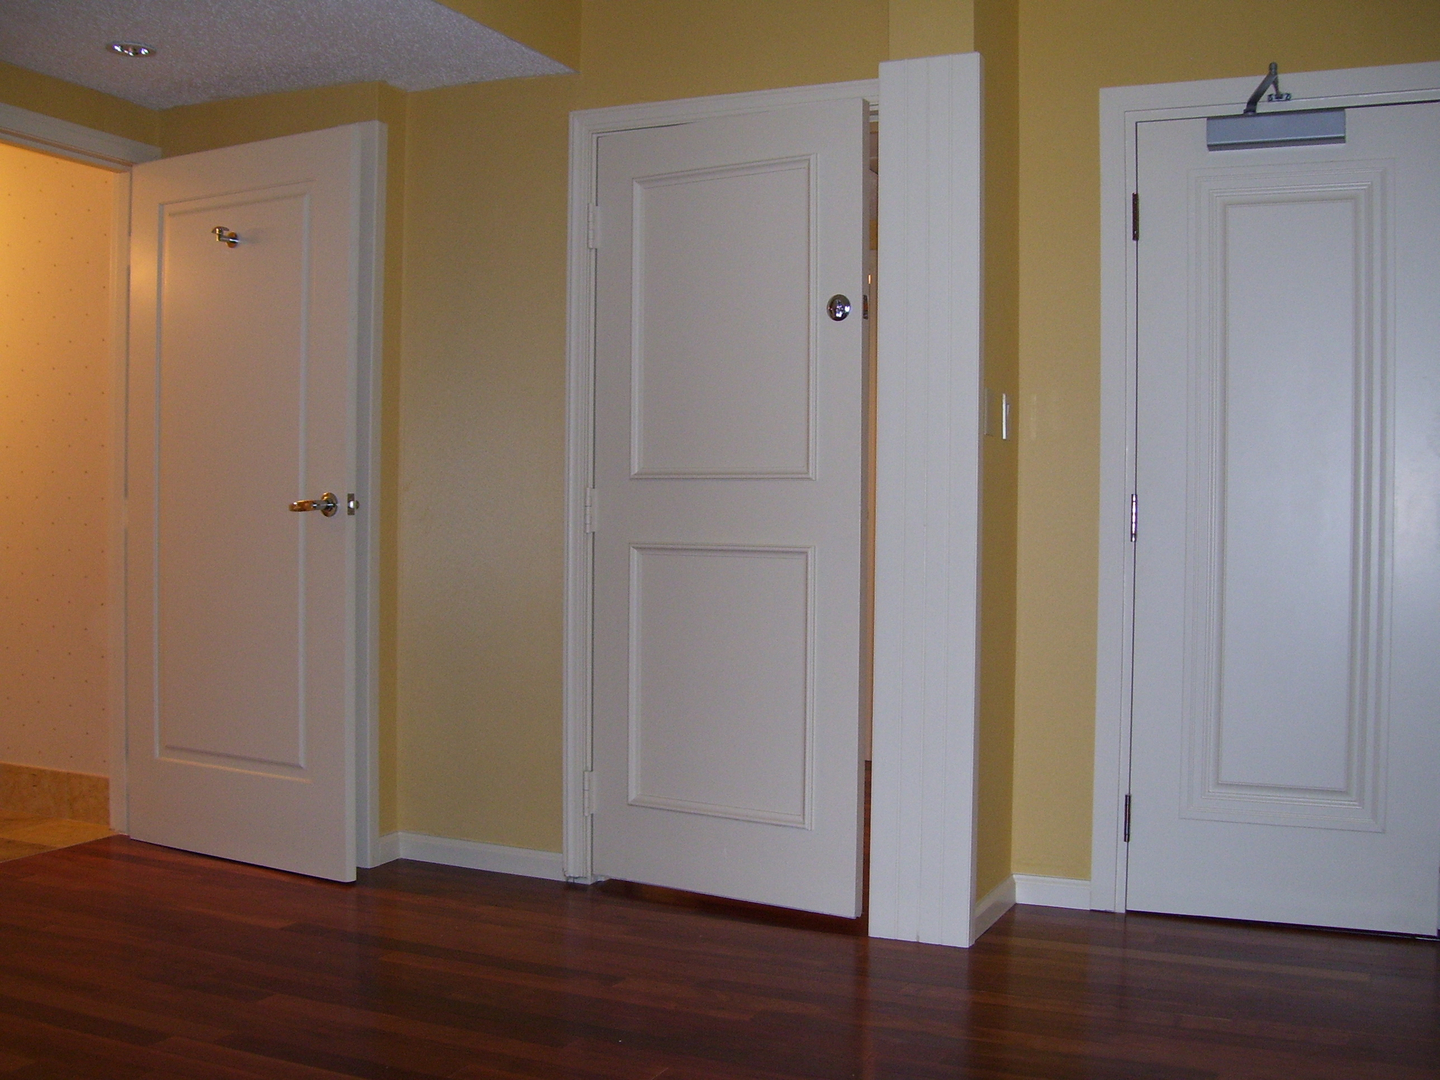 running-trim-millwork-building-supply-colorado springs, co_Fastrac Building Supply